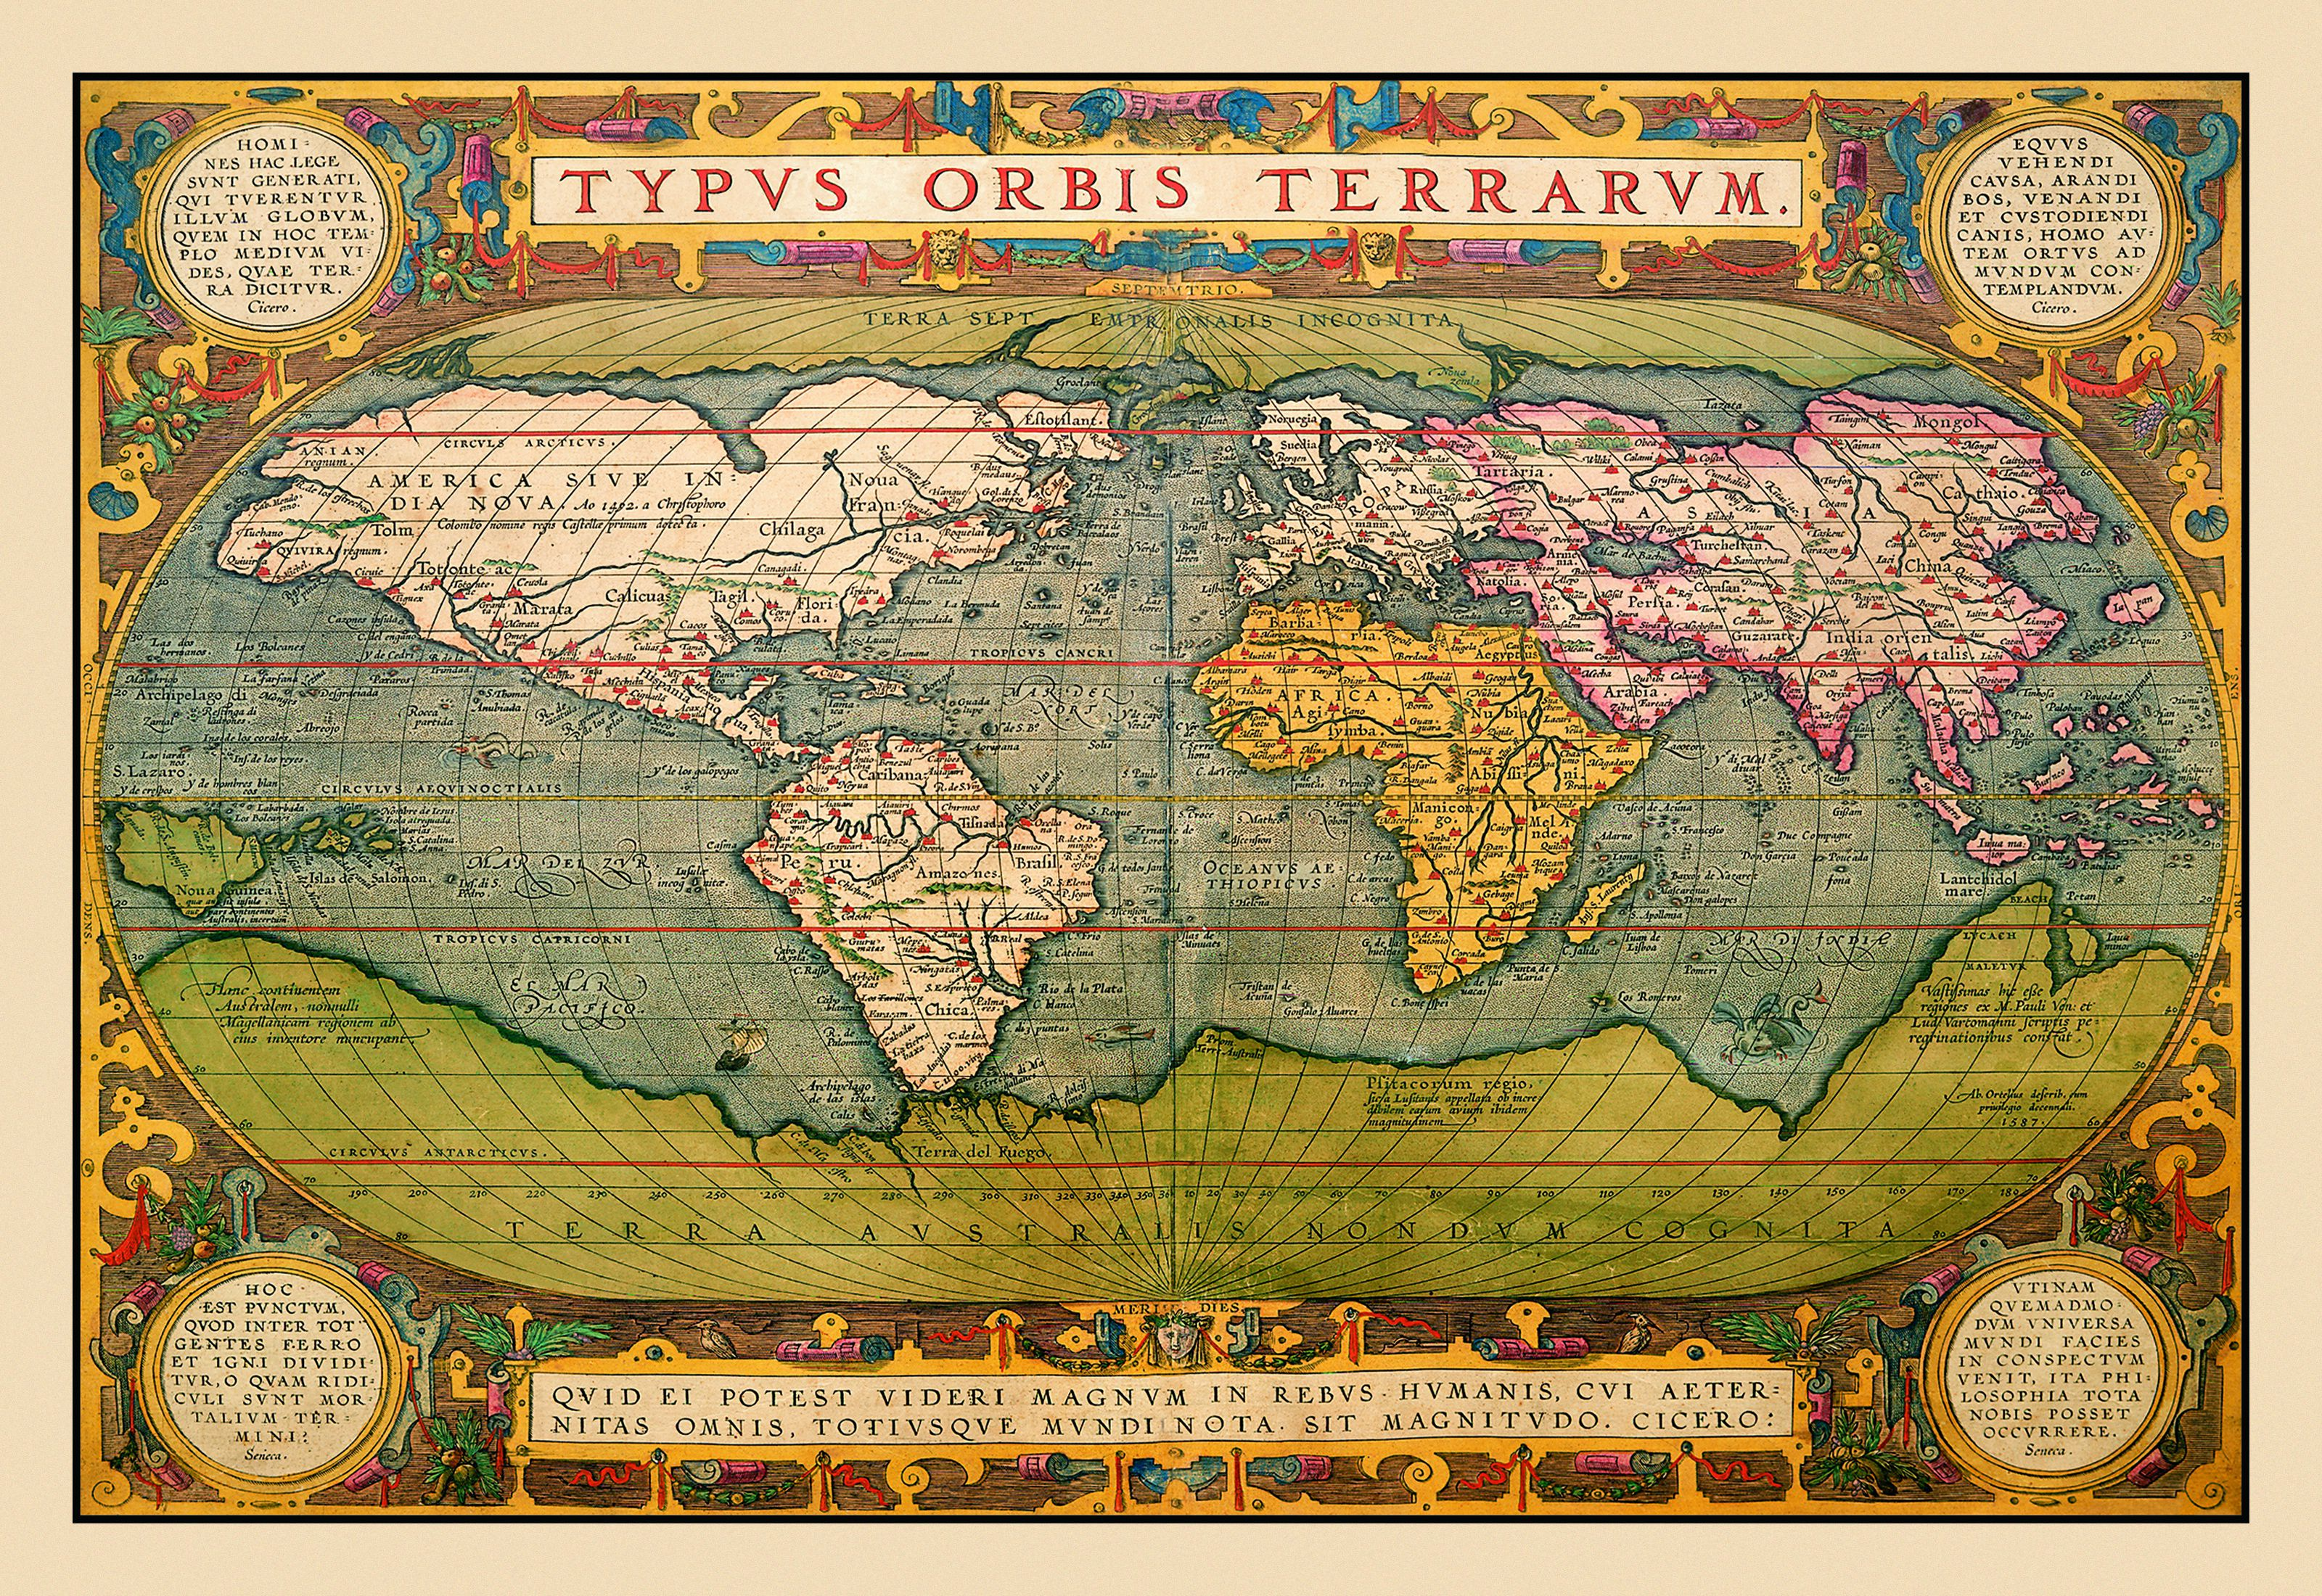 How Maps Can Distort Space and Deceive Us